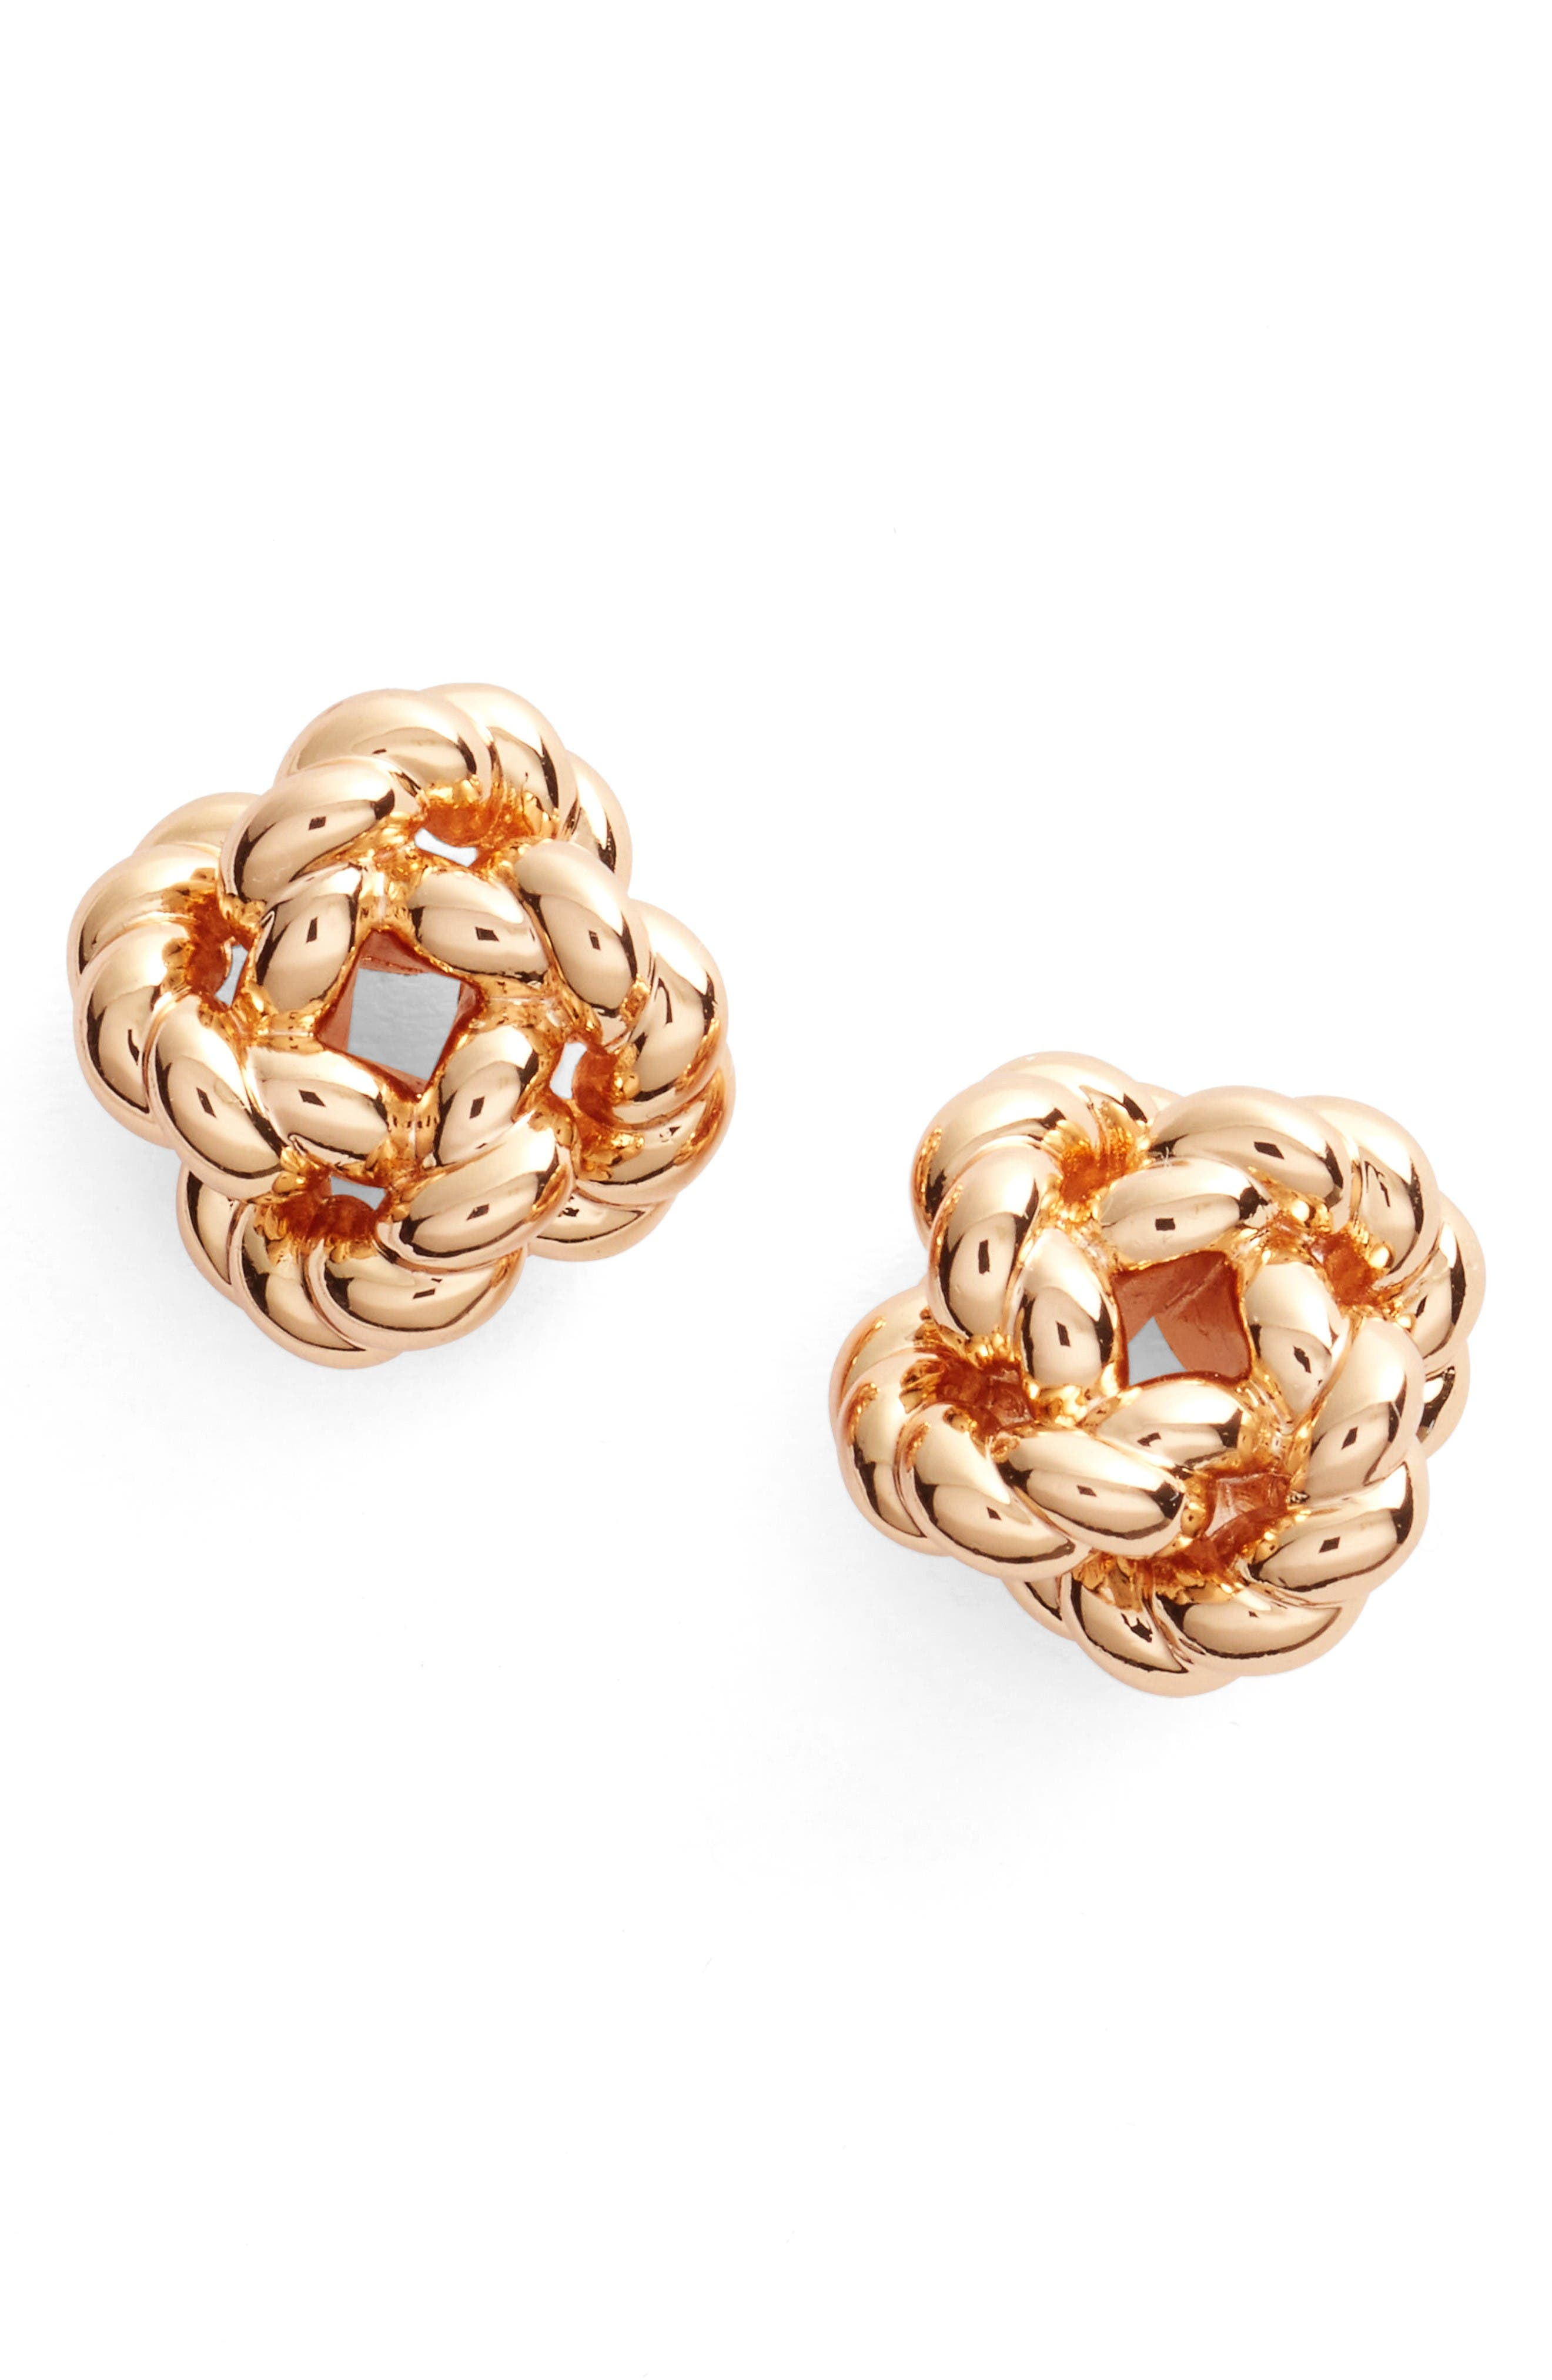 Main Image - Tory Burch Rope Knot Stud Earrings